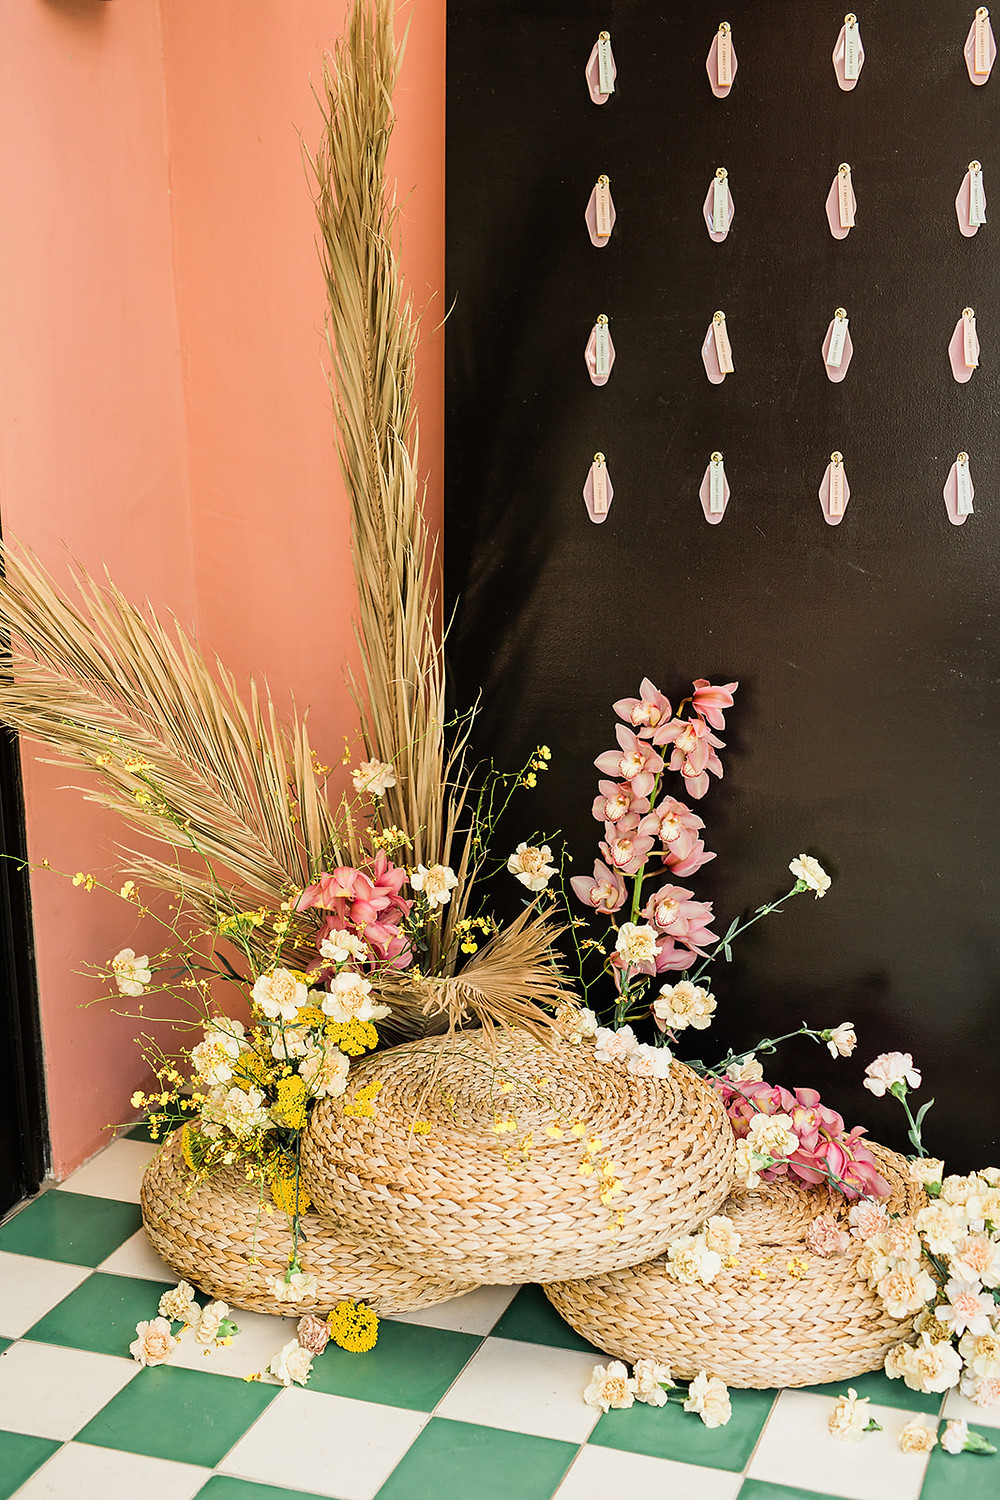 Modern Moroccan Desert Glam Editorial - LGBTQ Wedding Editoiral - Wedding Design Inspiration - Muted Desert Tones - Modern Glam Jungle Chic close-up of escort card display and floral installation